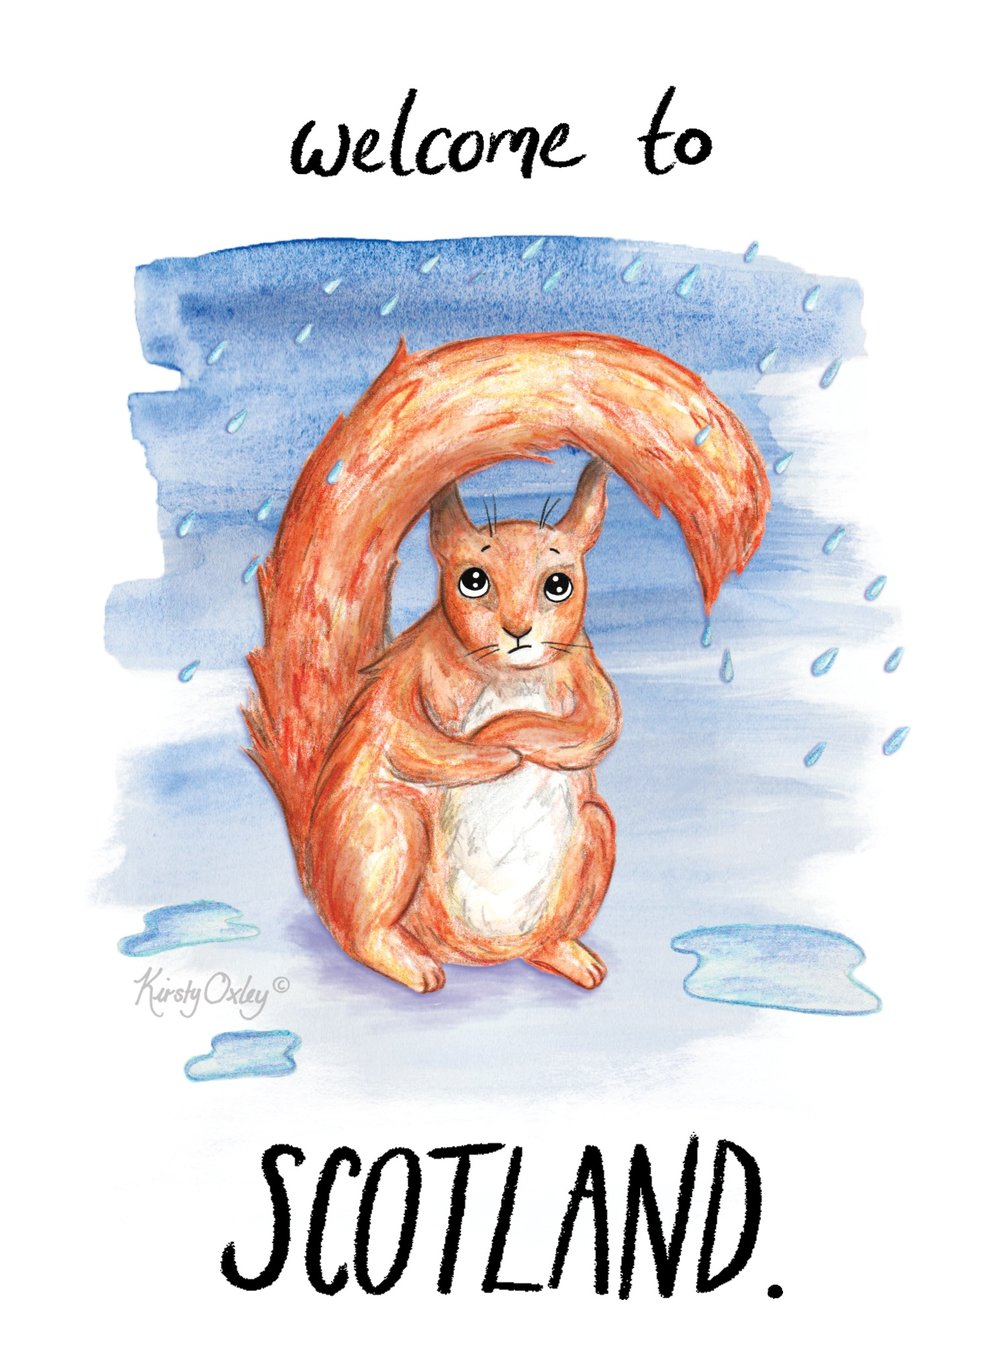 red_squirrell_kirsty_oxley_scotland_illustration_web.jpg